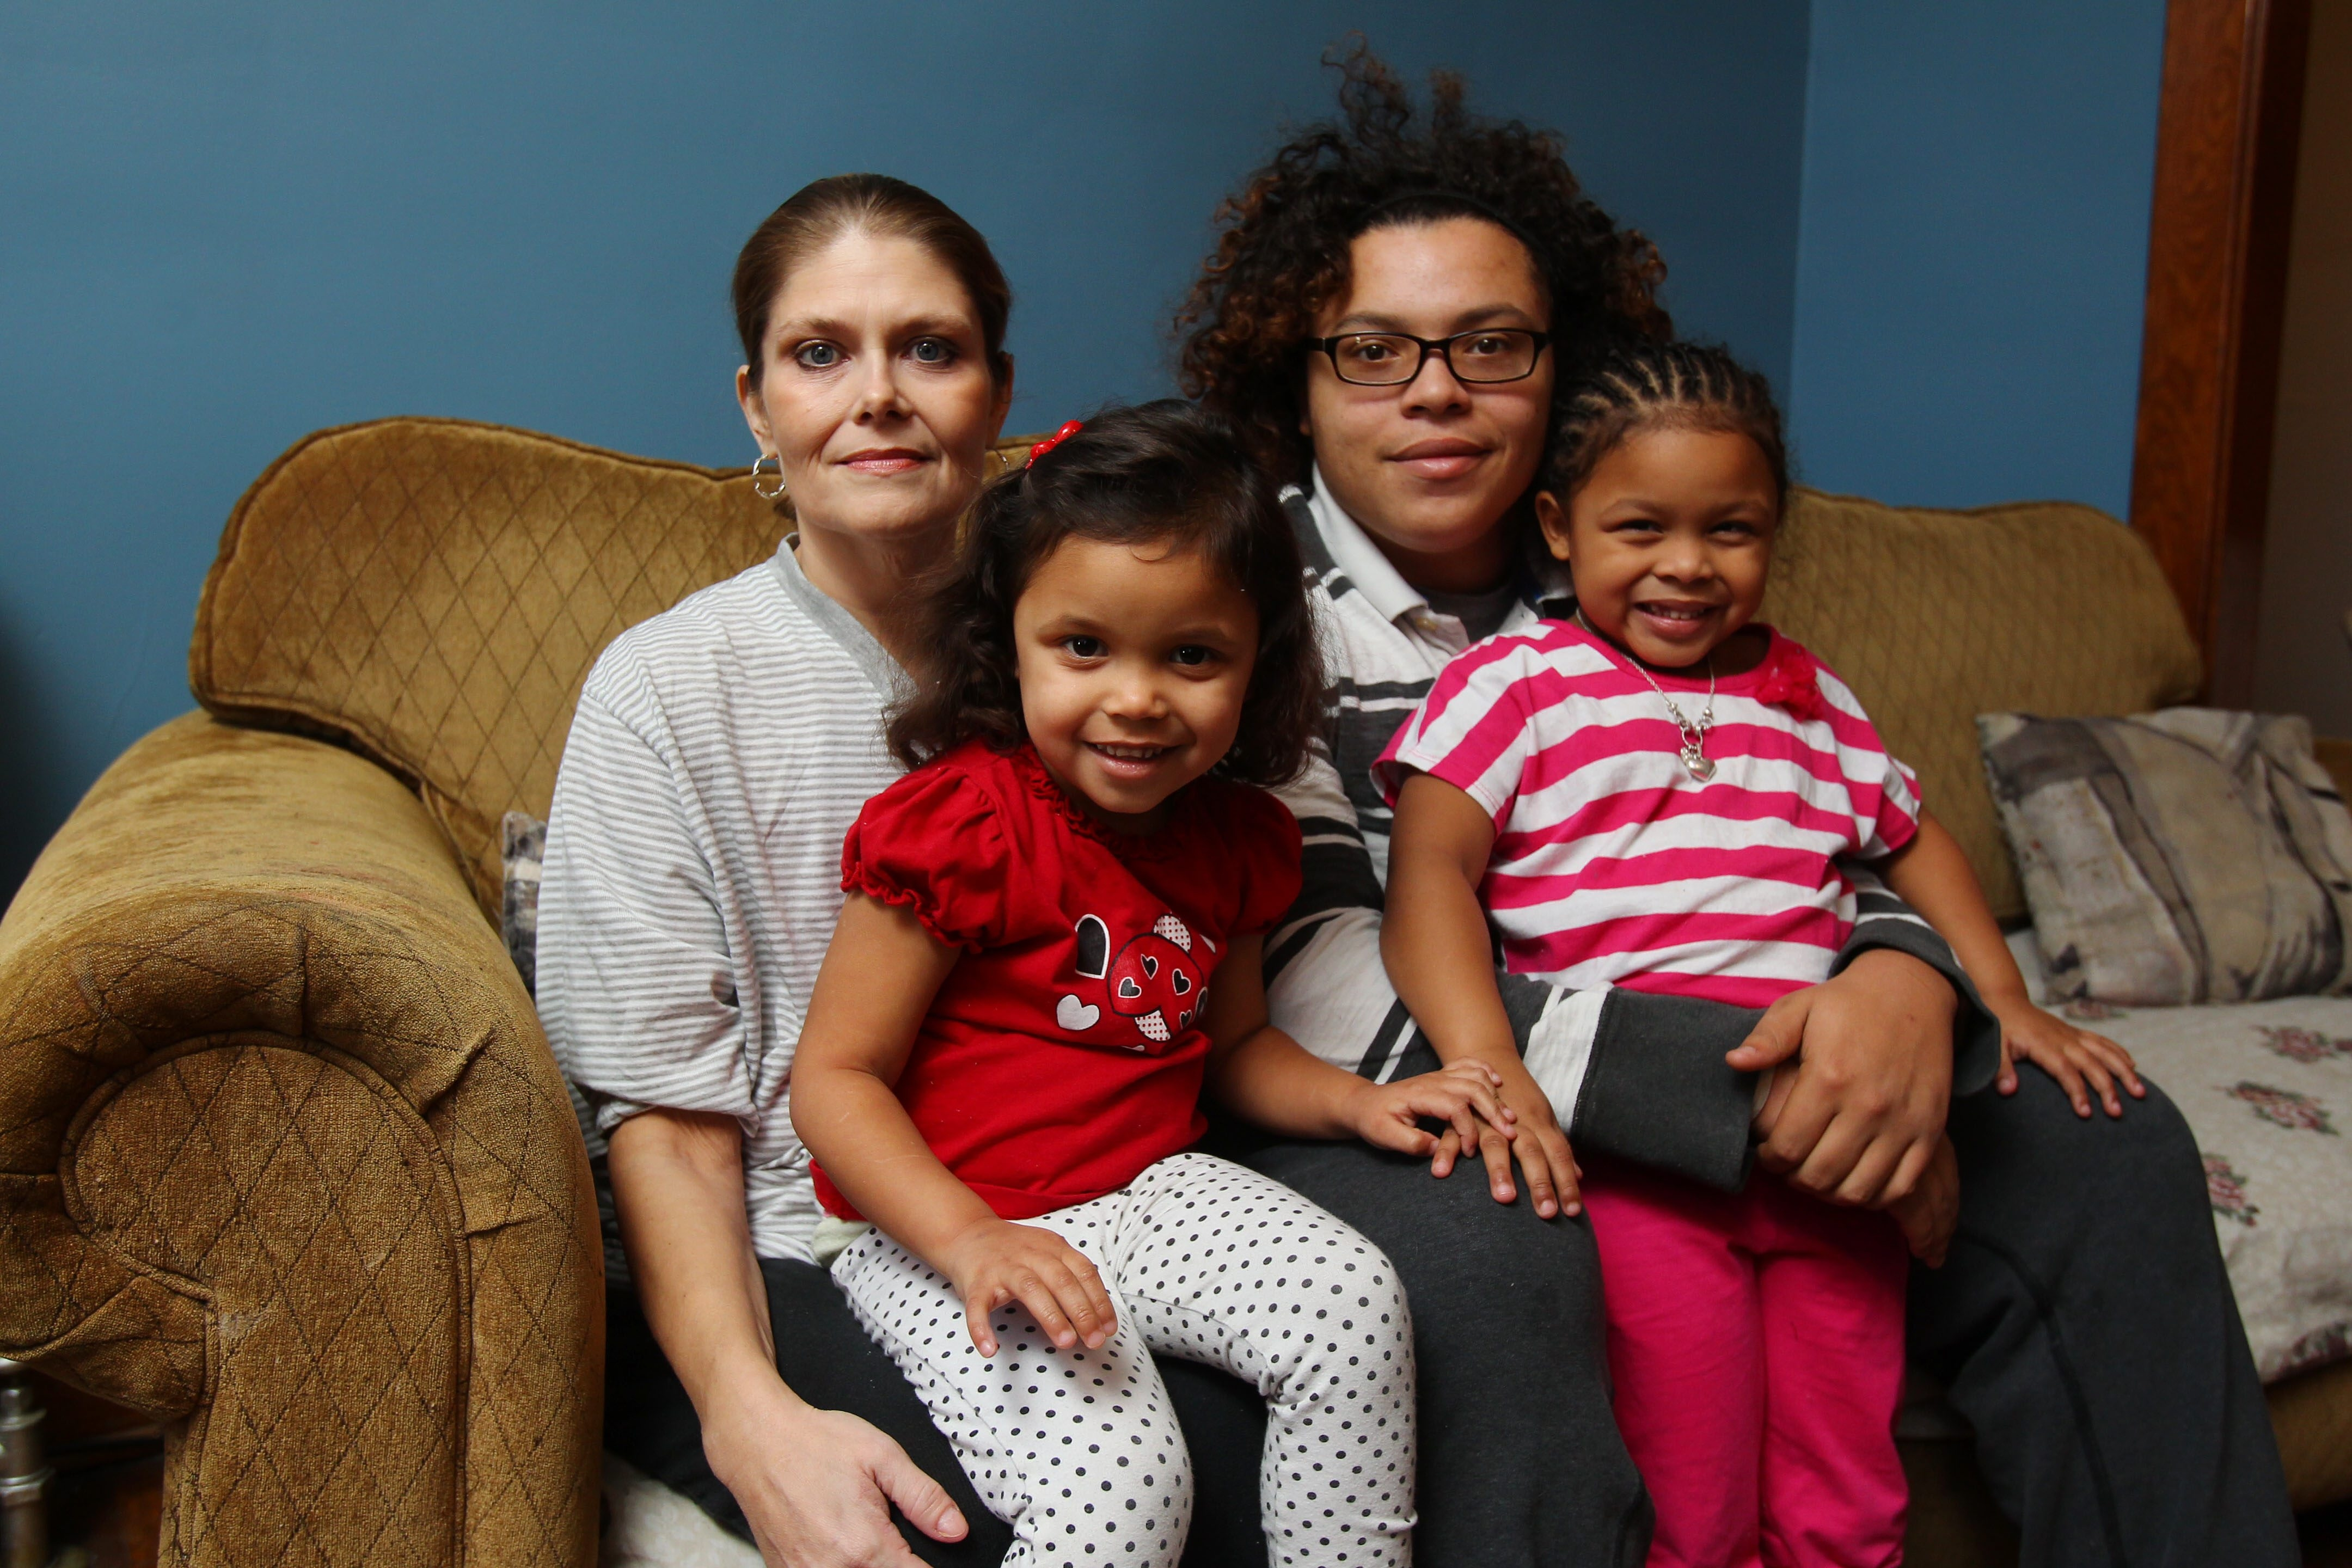 From left, single mom Sonia Whitlock poses in her Niagara Falls apartment with her children Summer, Wardy and Skylar. A car collision changed life forever for Whitlock and her family.